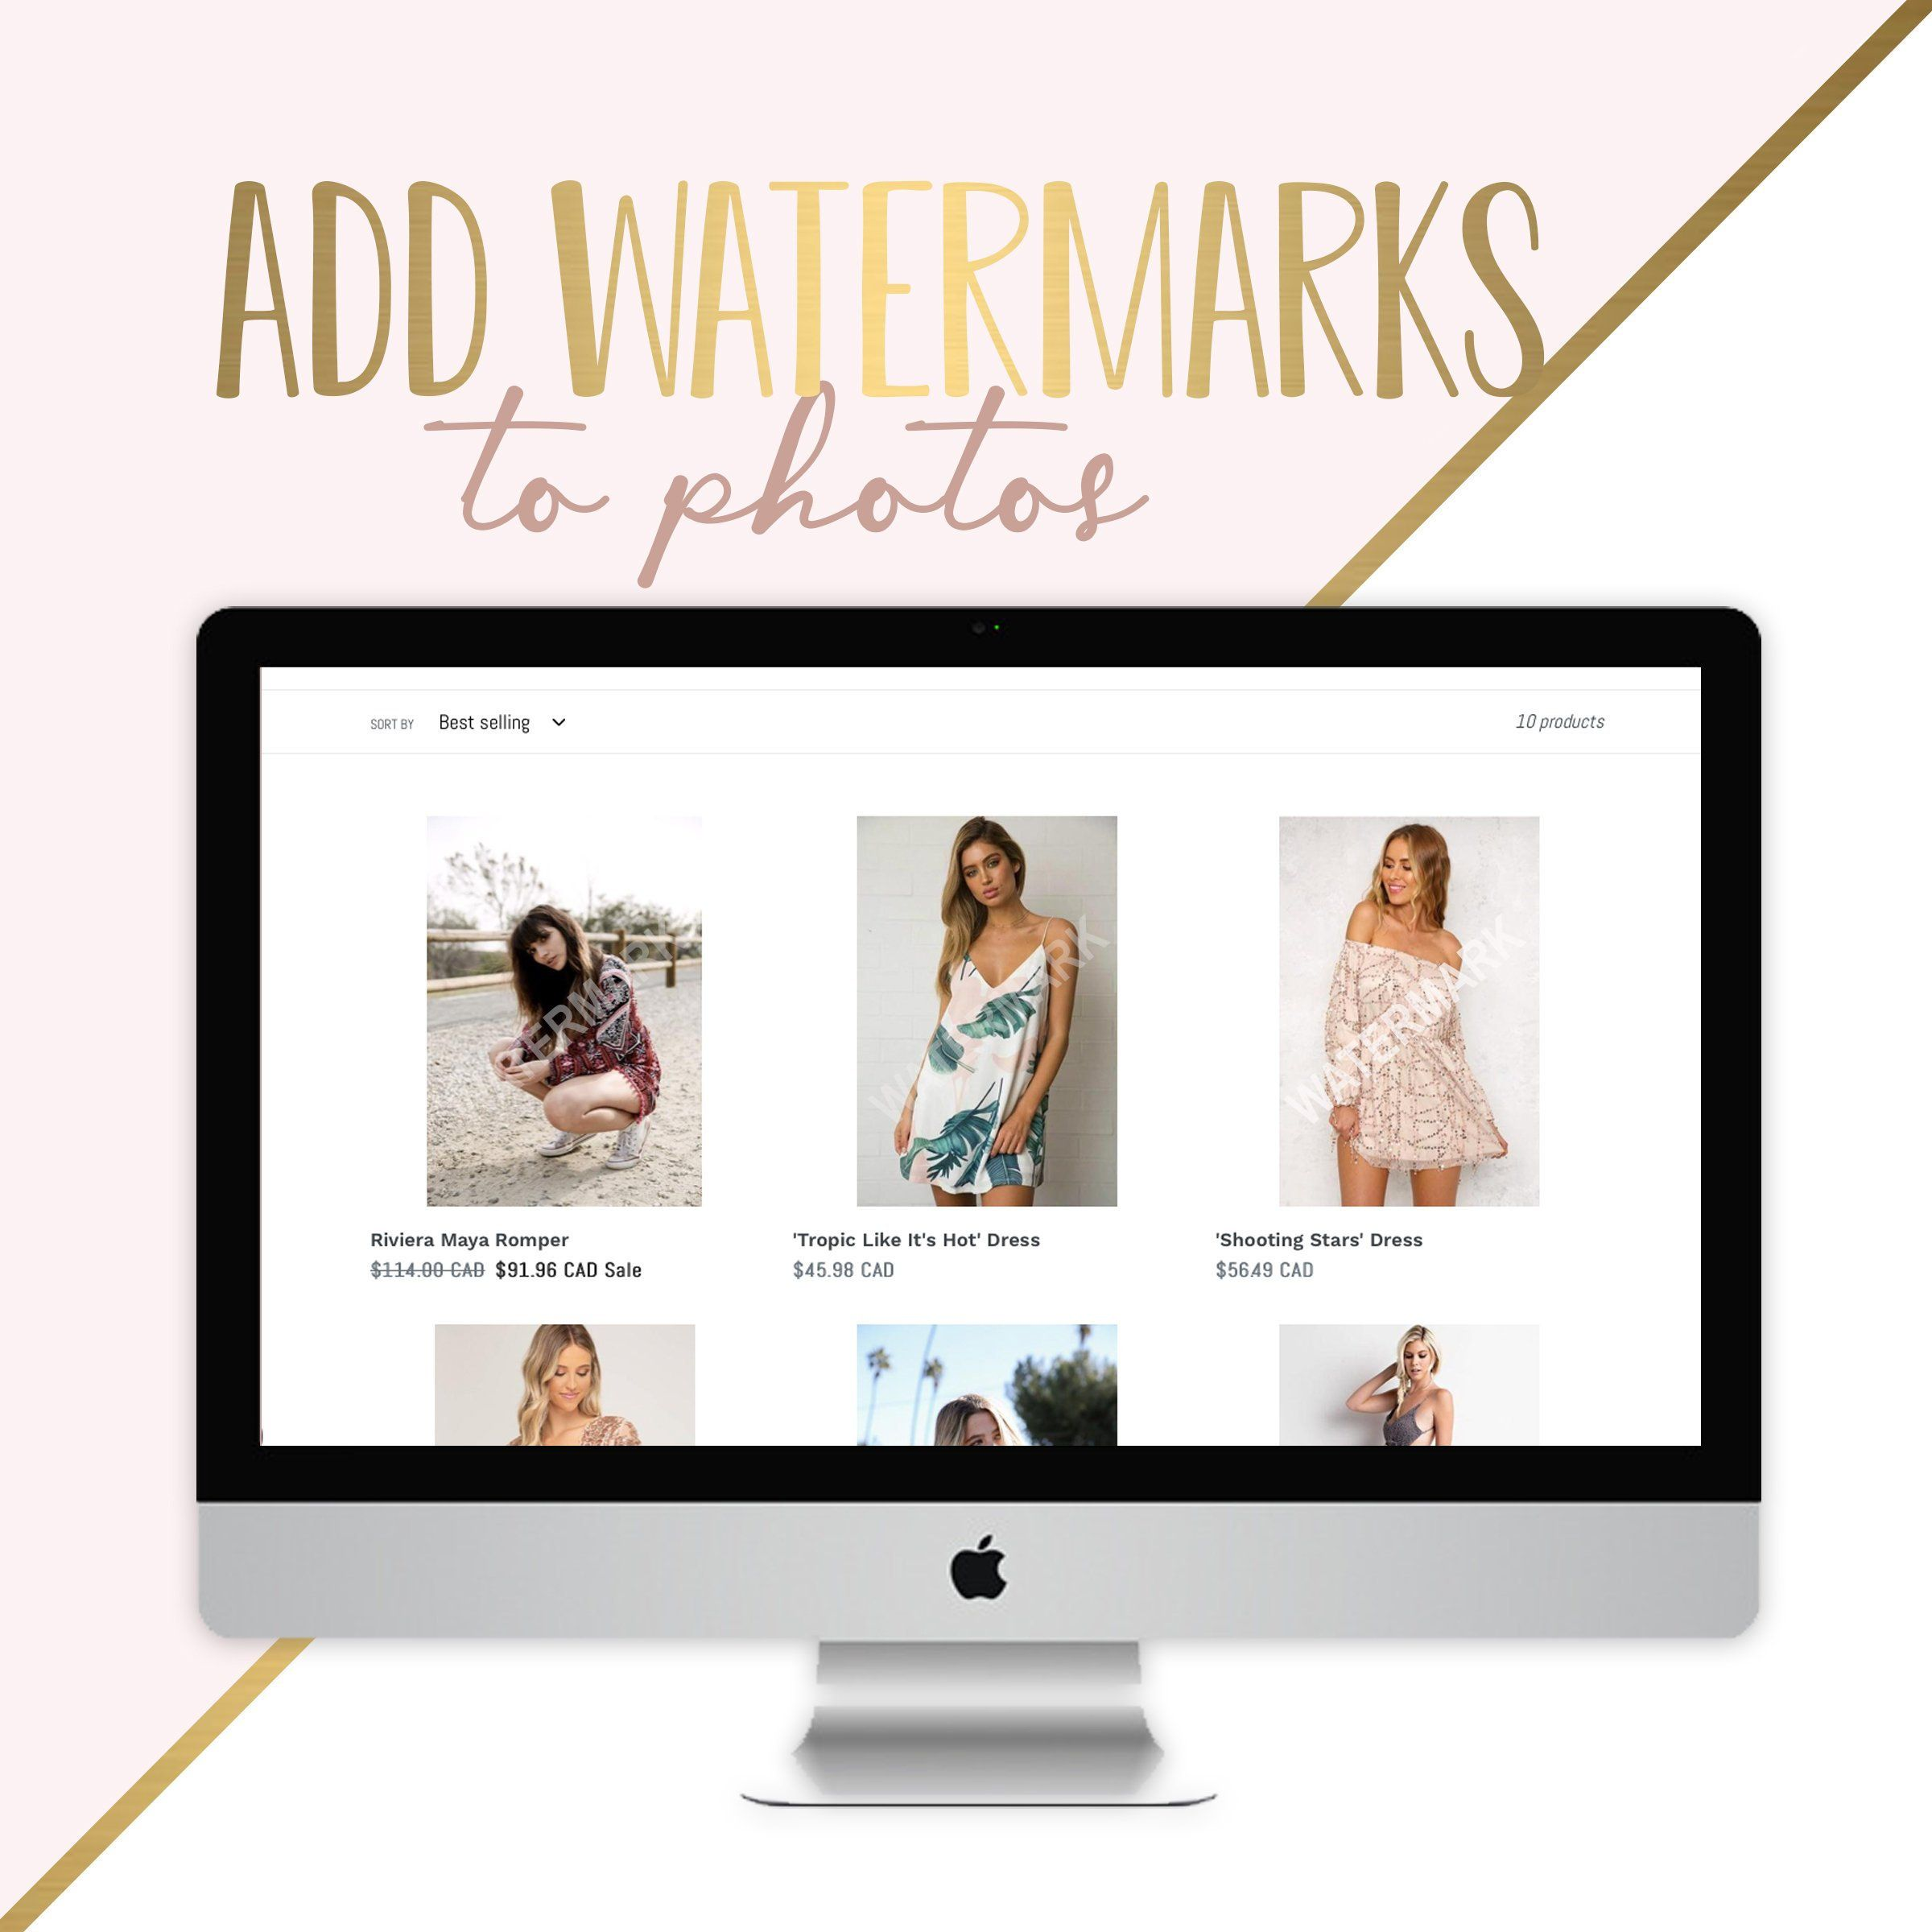 Add Watermarks, Website Designing, Shopify Services, Photo